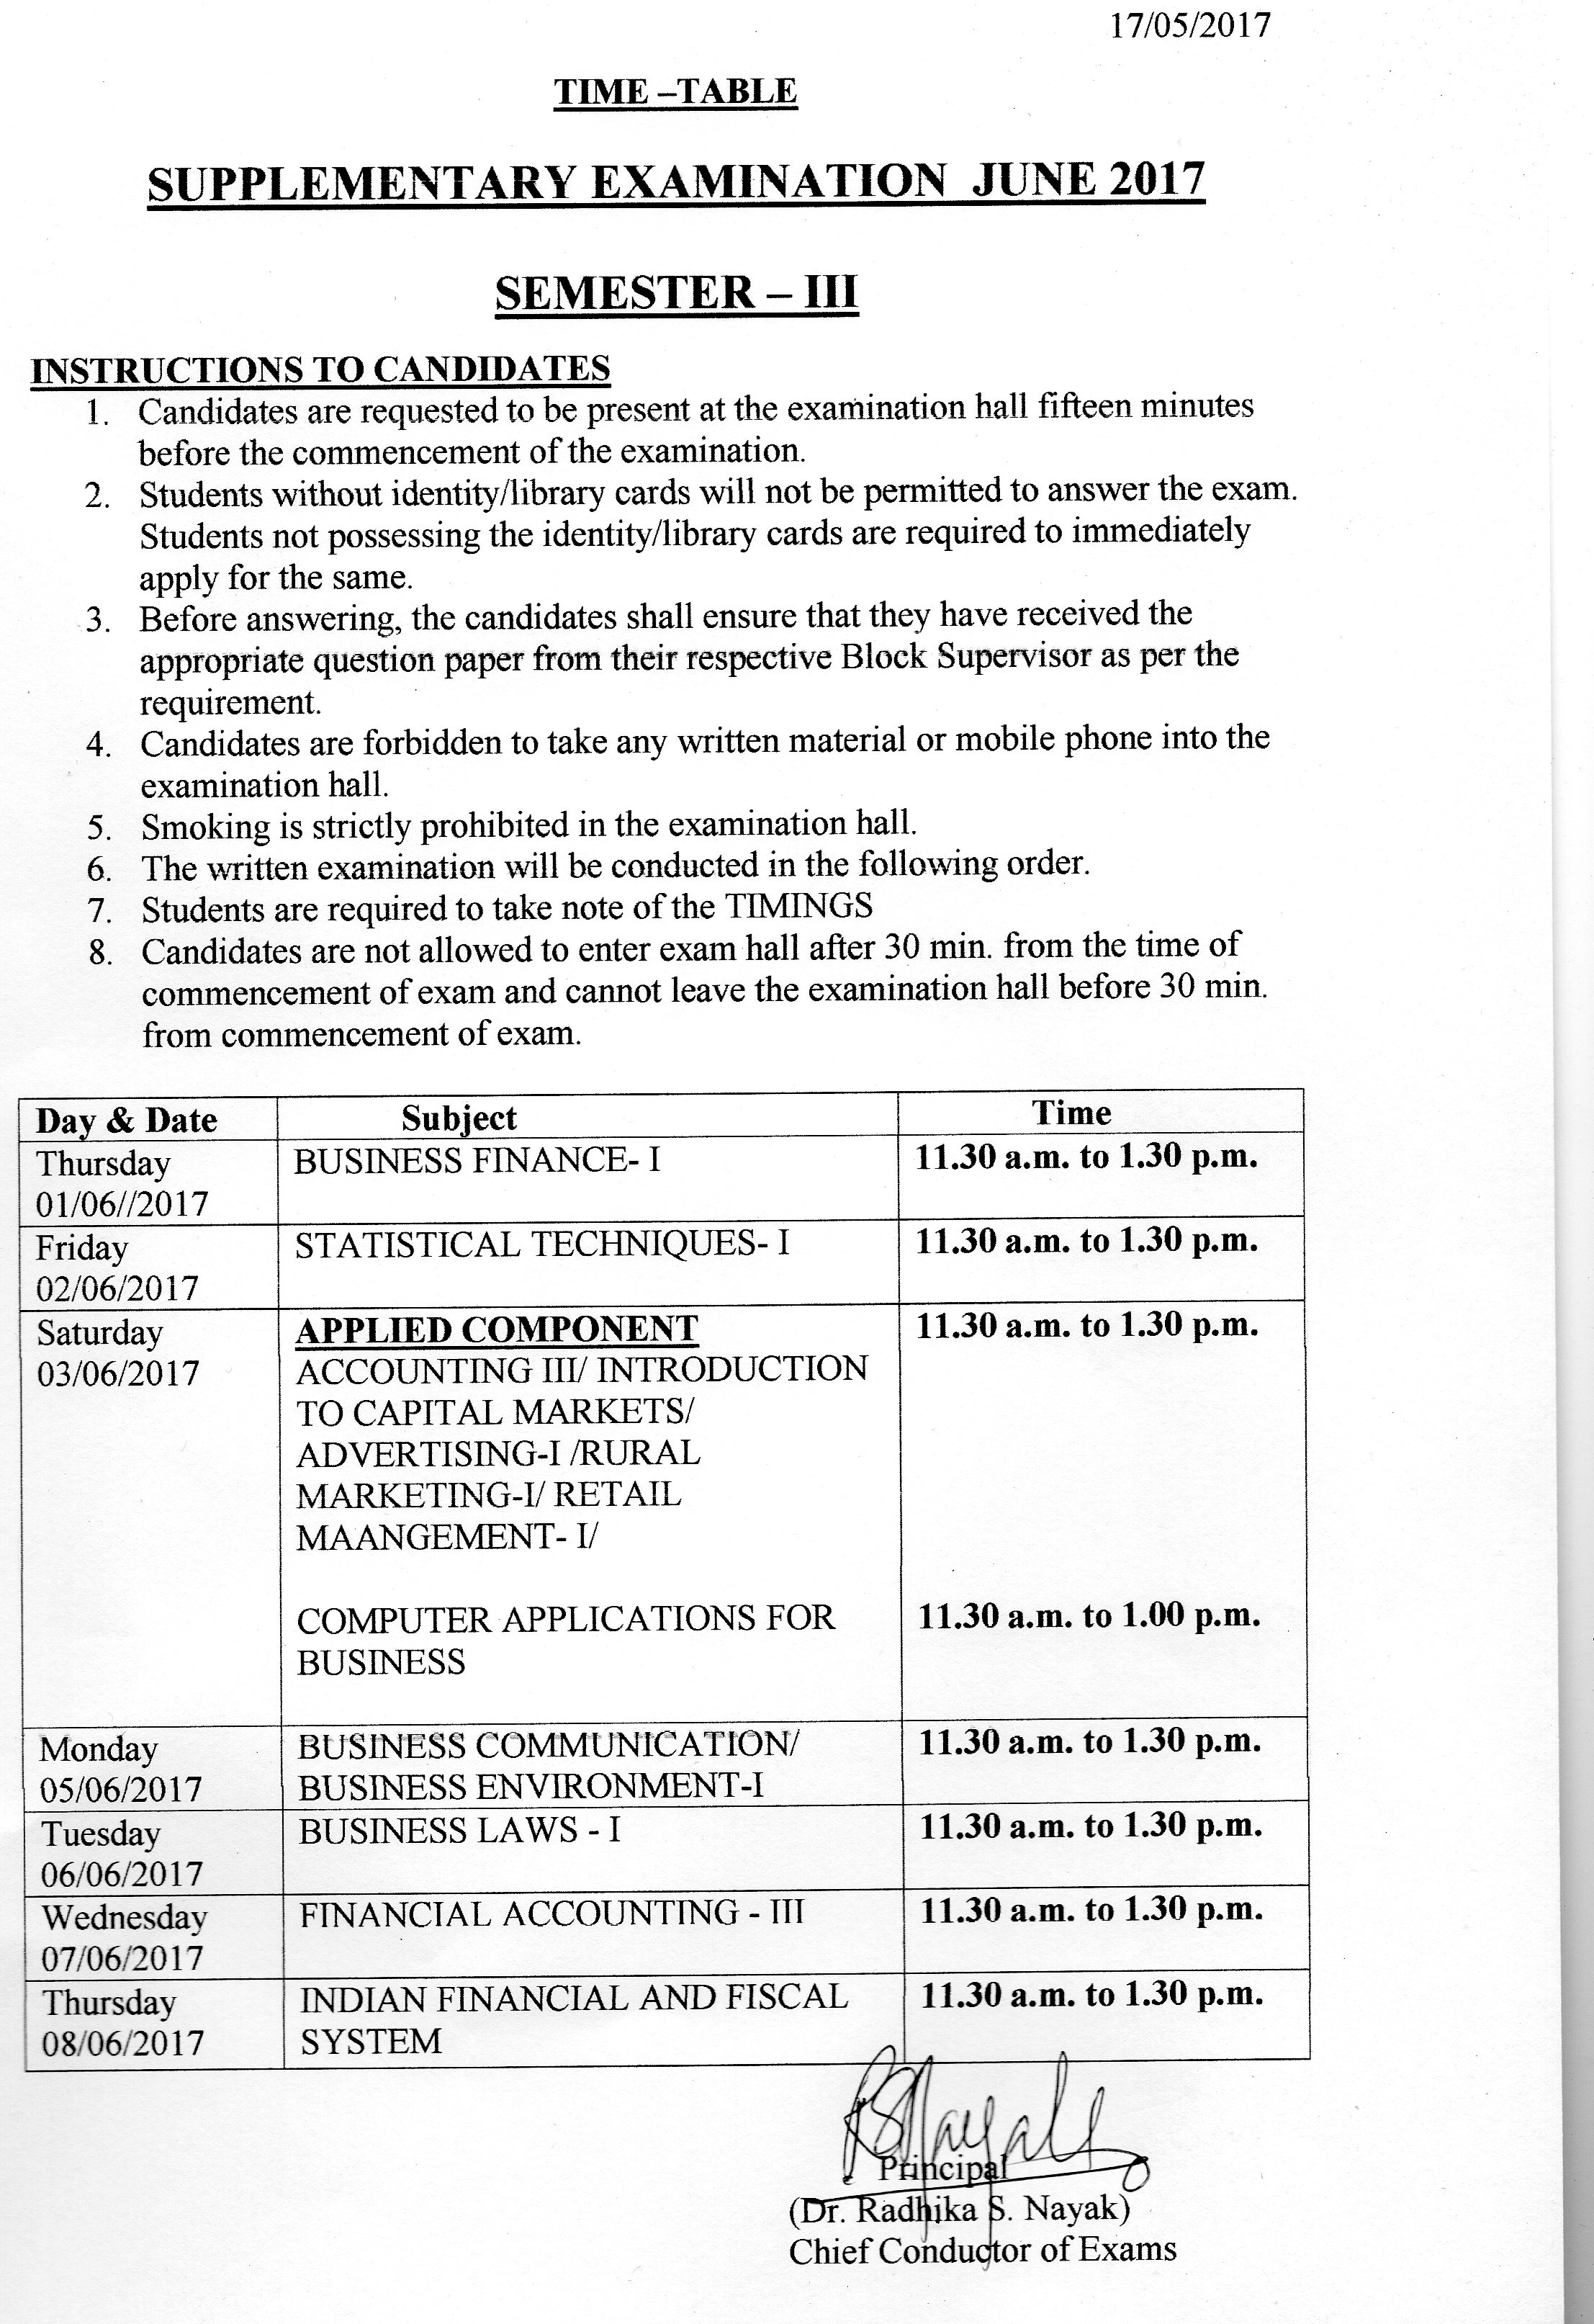 Supplementary Examination June 2017 Time Table - S  S  Dempo